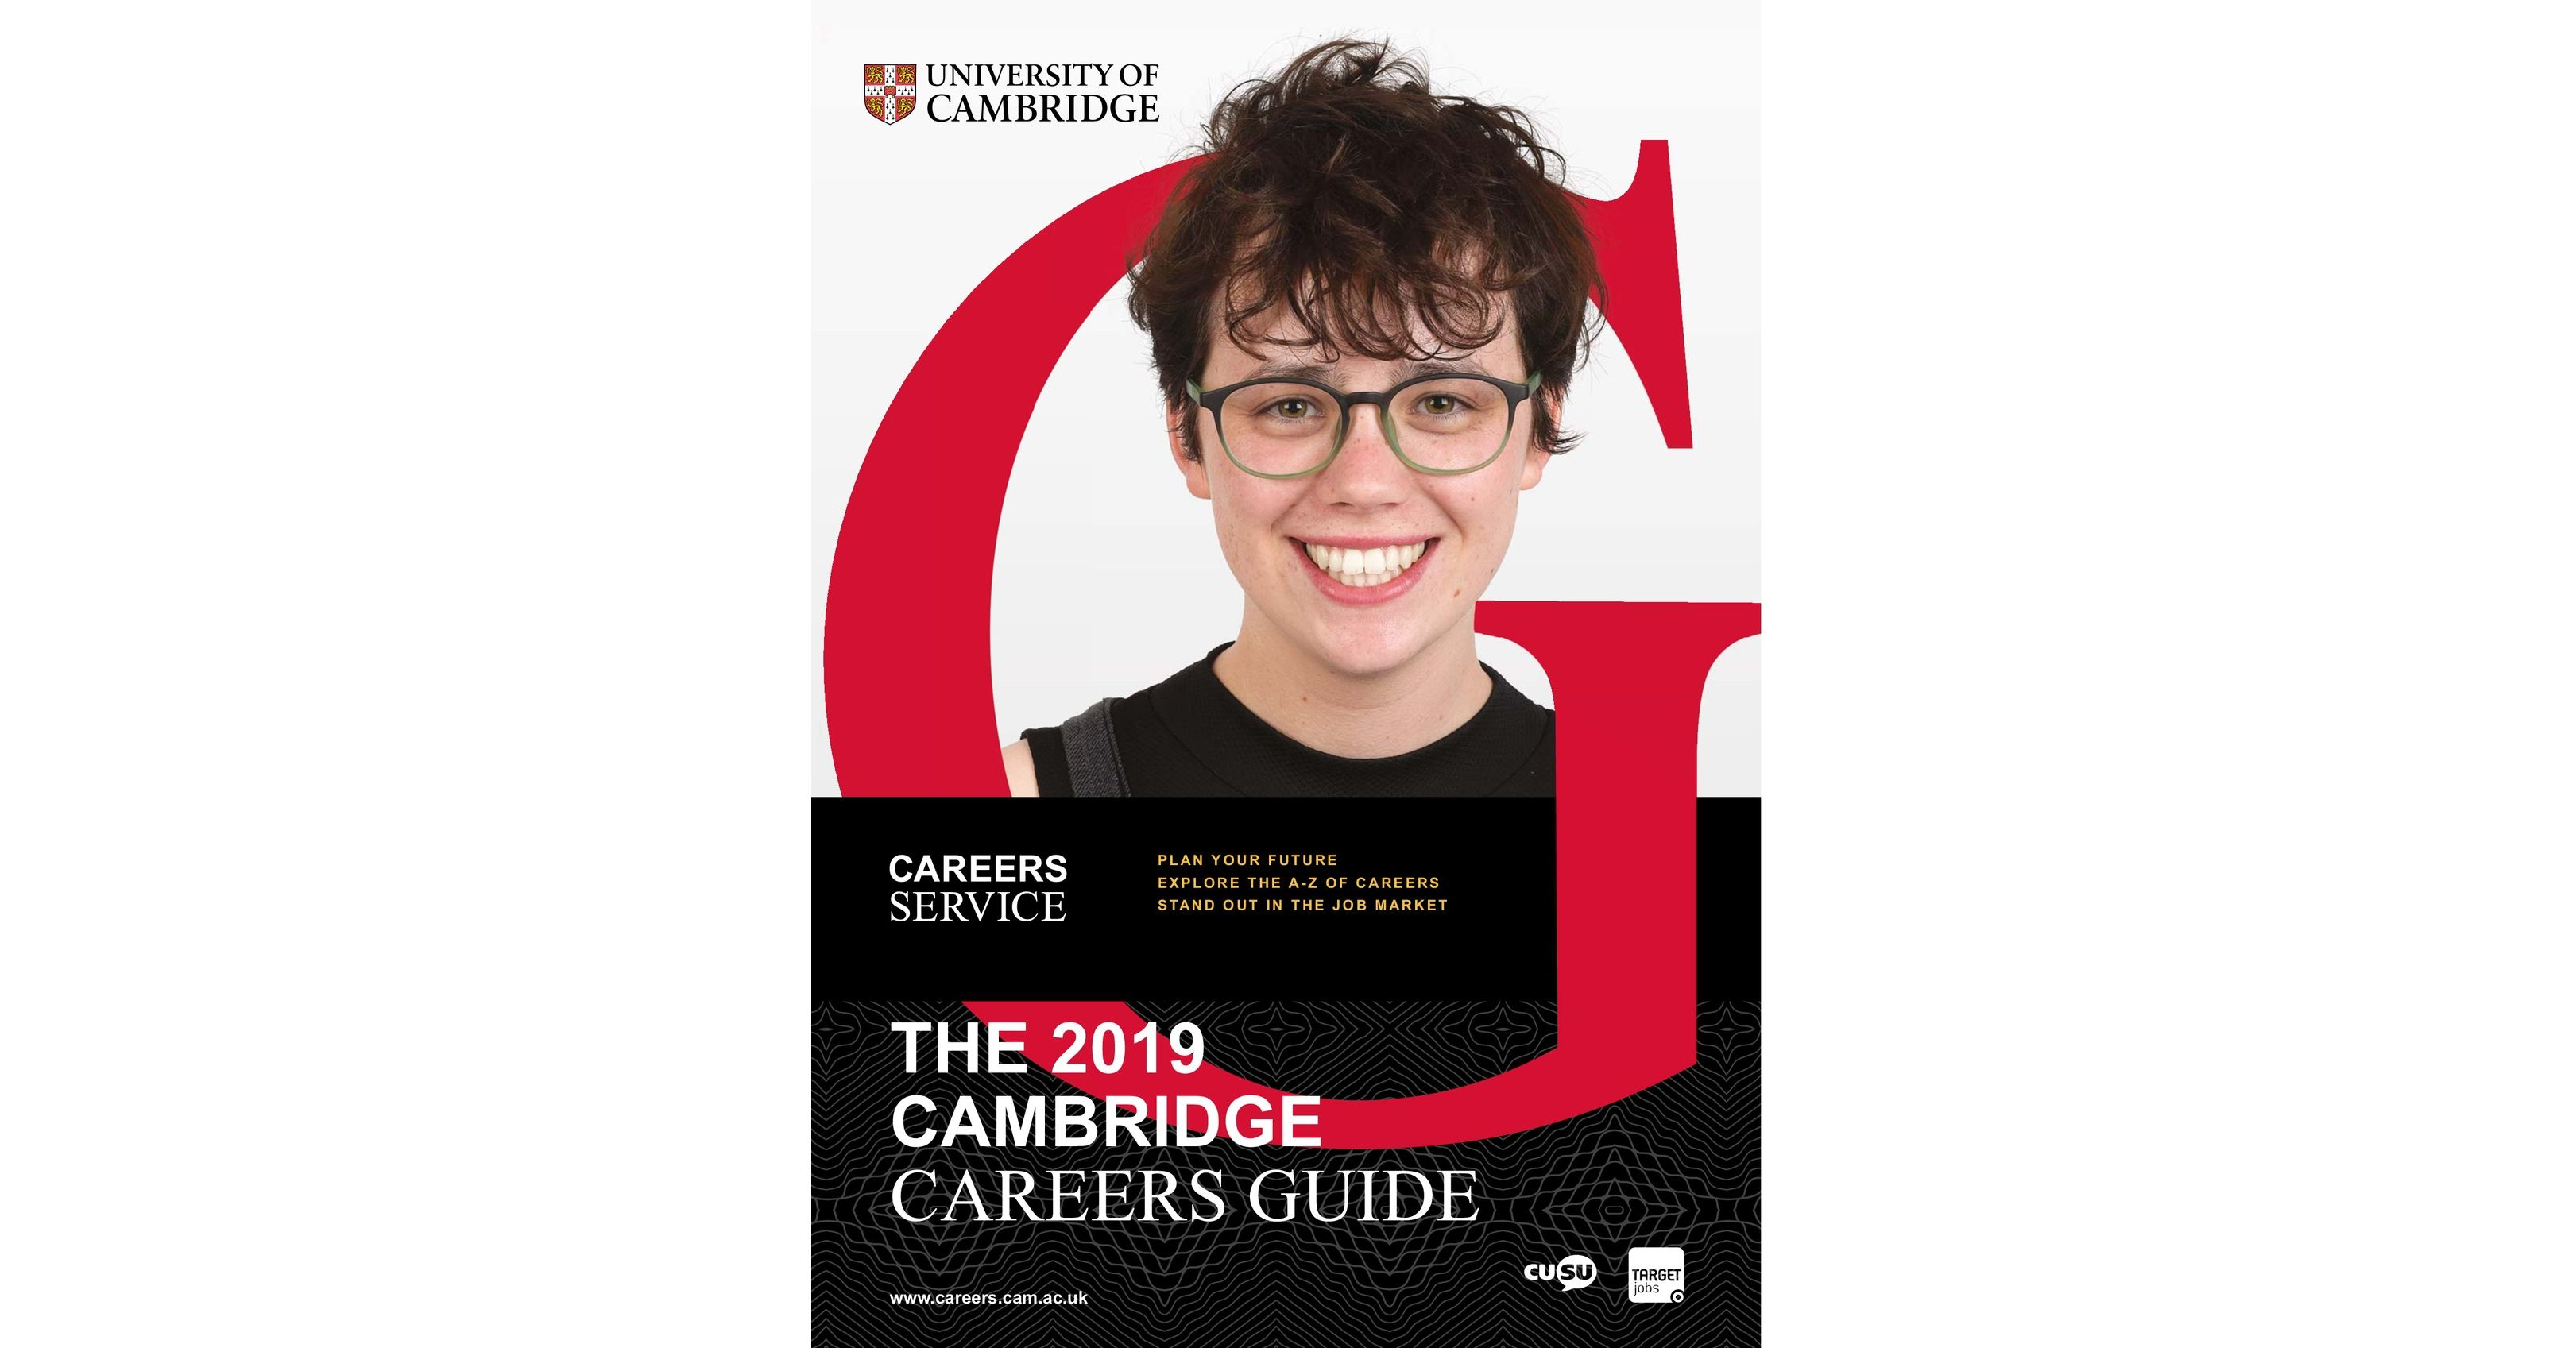 THE 2019 CAMBRIDGE CAREERS GUIDE